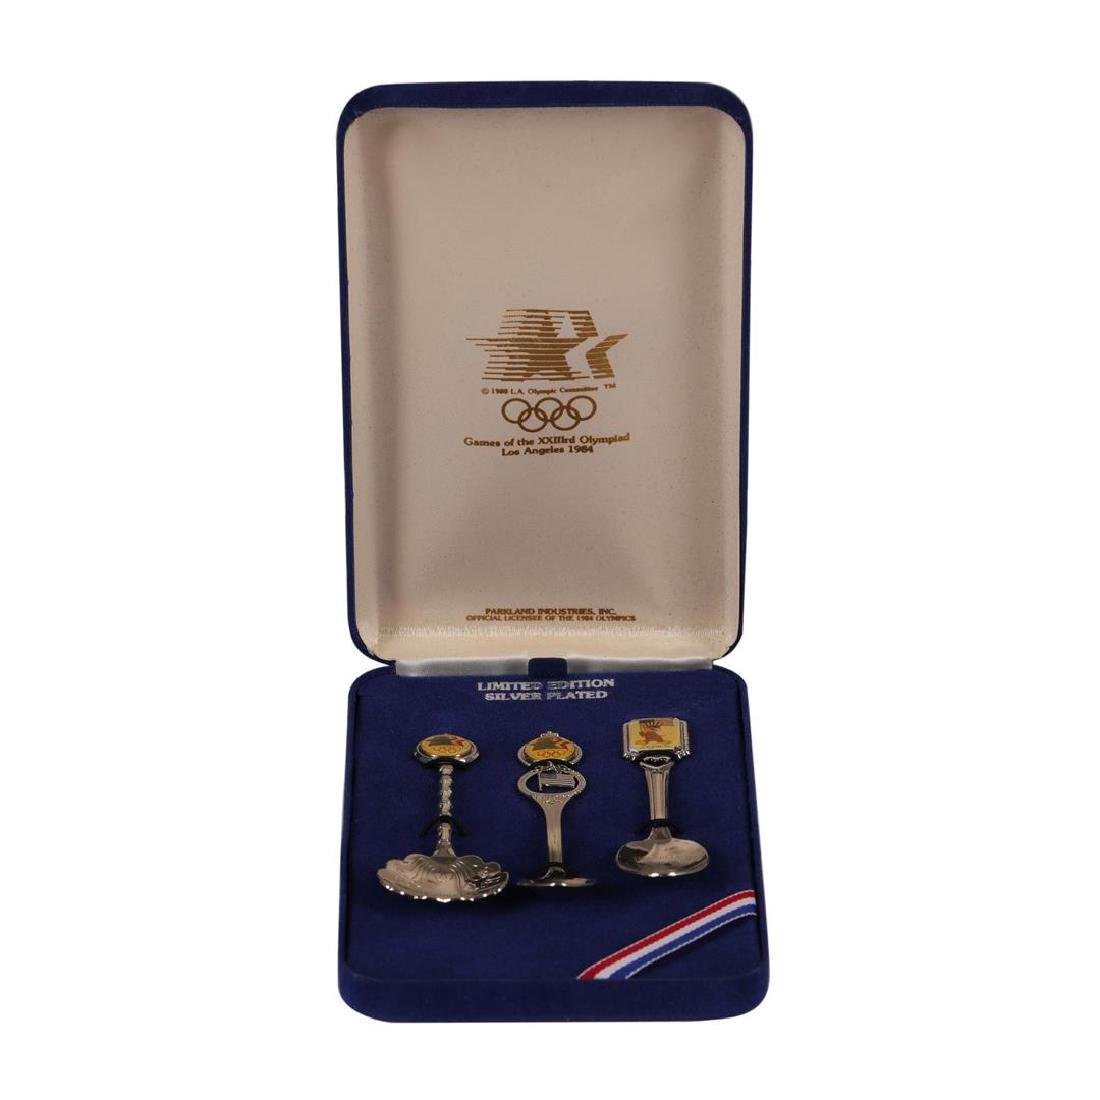 Lot of (3) 1984 Limited Edition Silver Plated Olympic